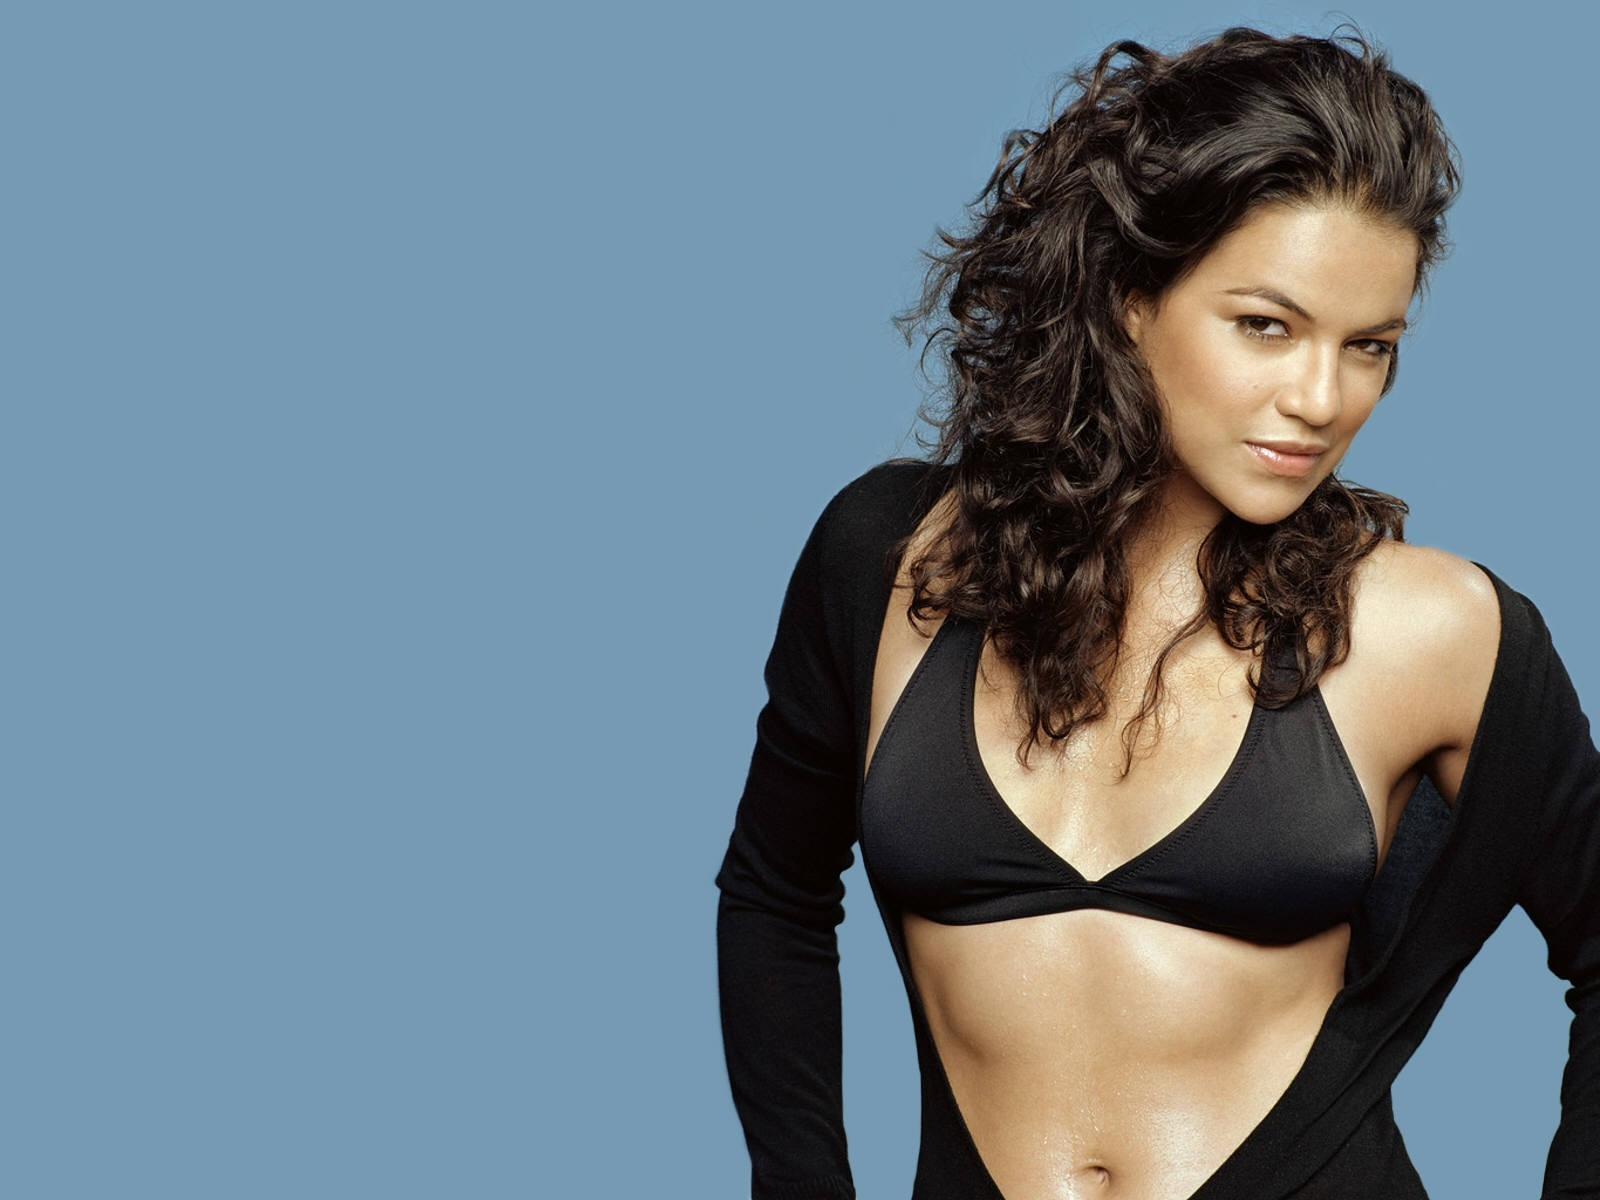 Wallpaper di Michelle Rodriguez - 20